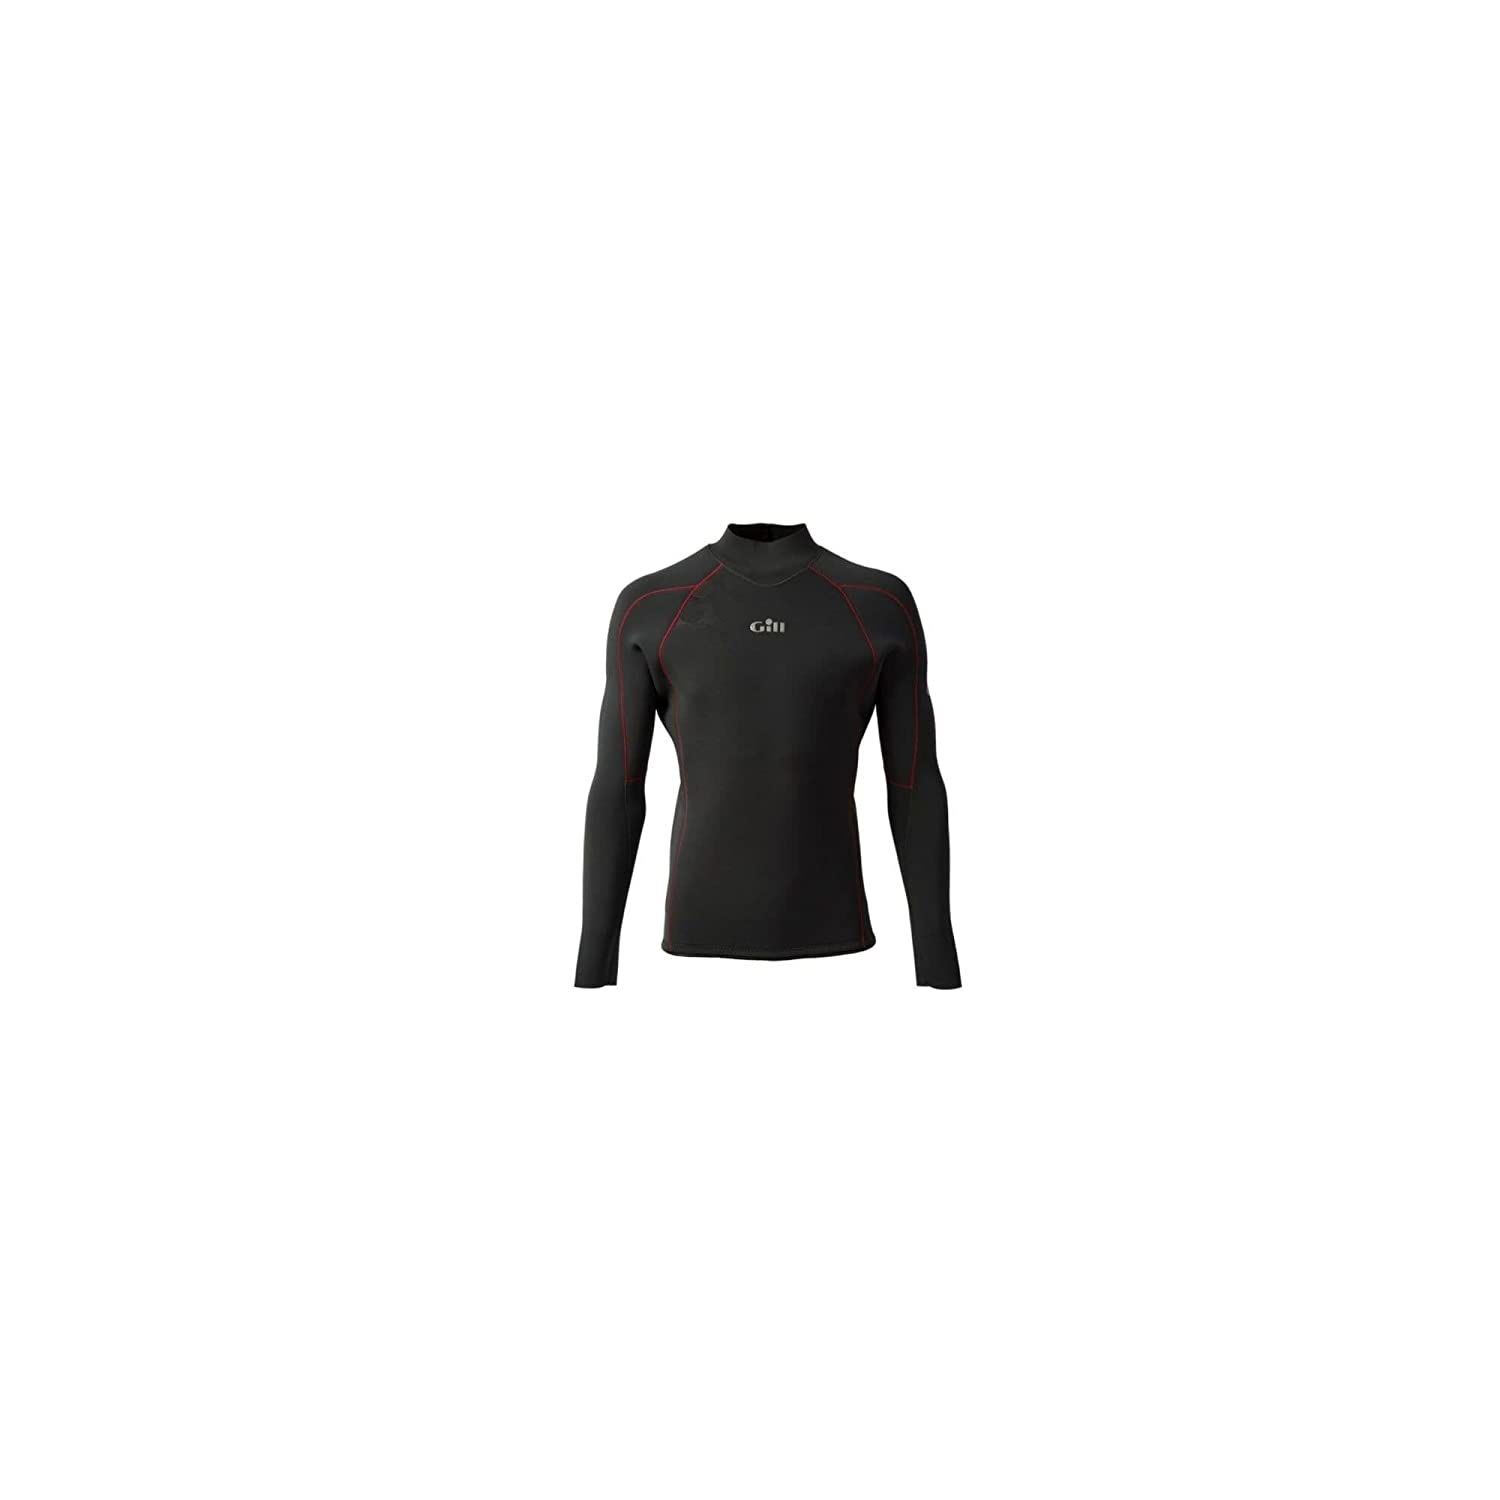 2017 Gill Race Firecell Long Sleeve Neoprene Top GRAPHITE / GREY RS17